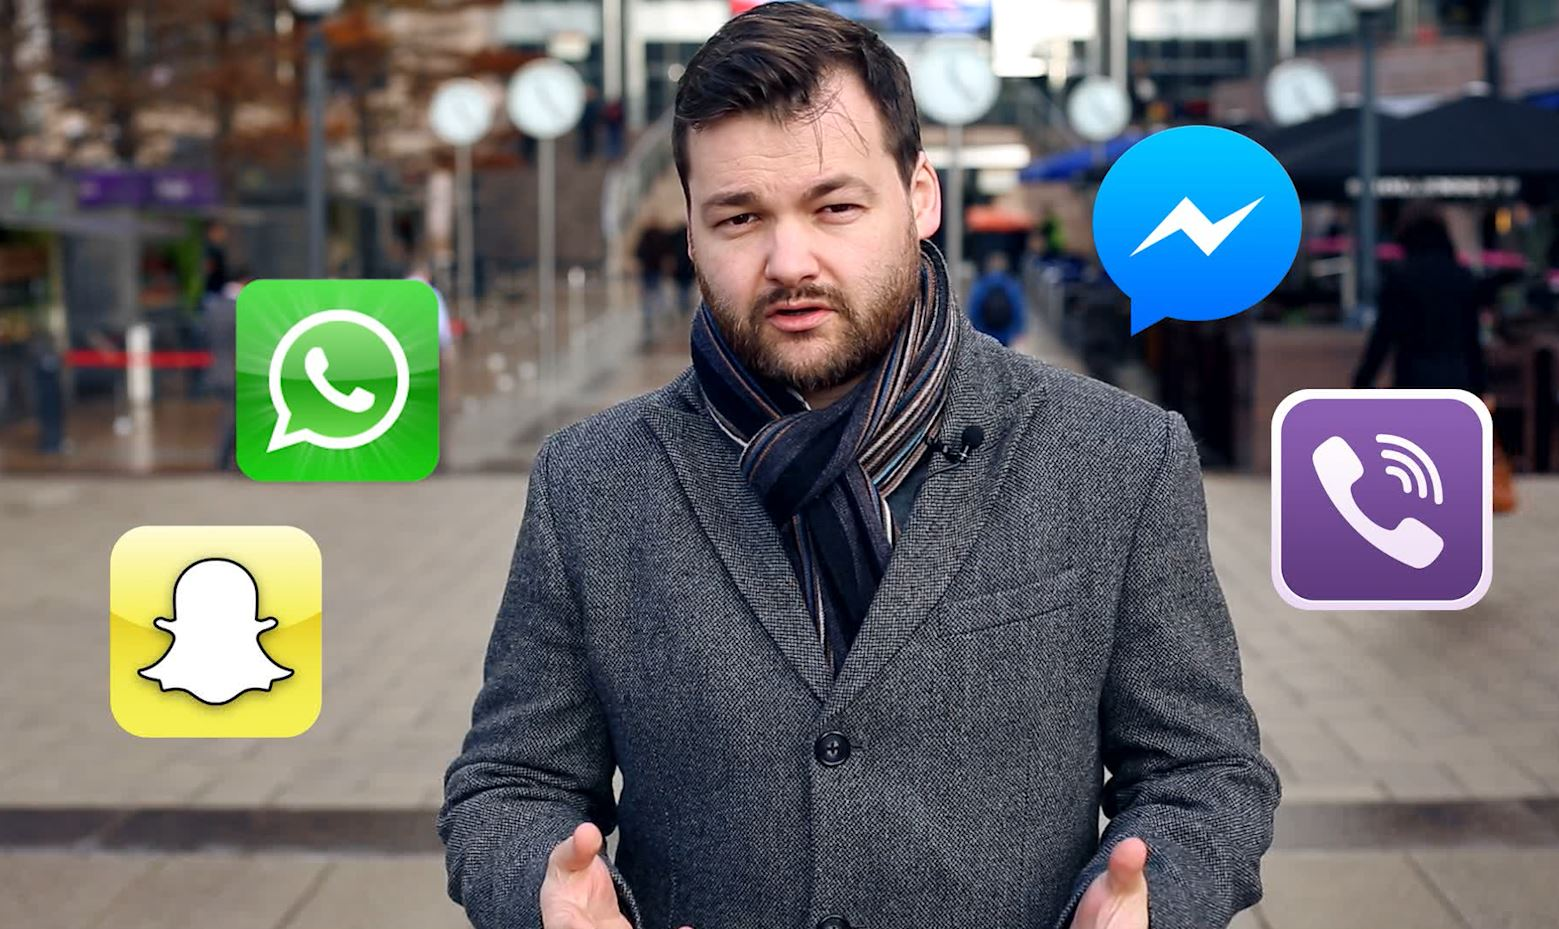 Tech Talk: The Evolution of Messaging